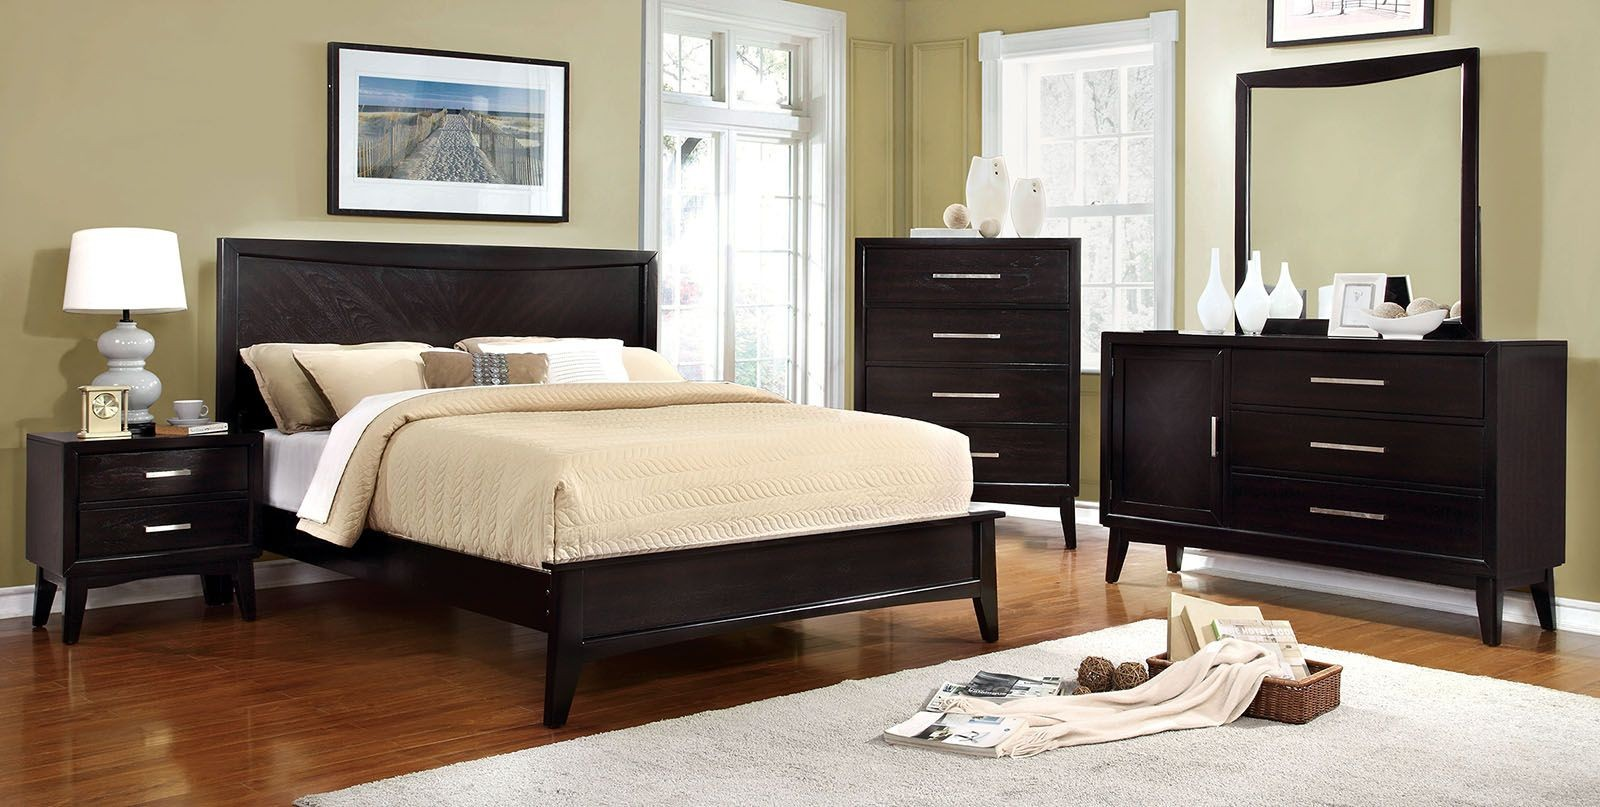 Snyder Espresso Youth Bedroom Set CM7792EX F Furniture of America